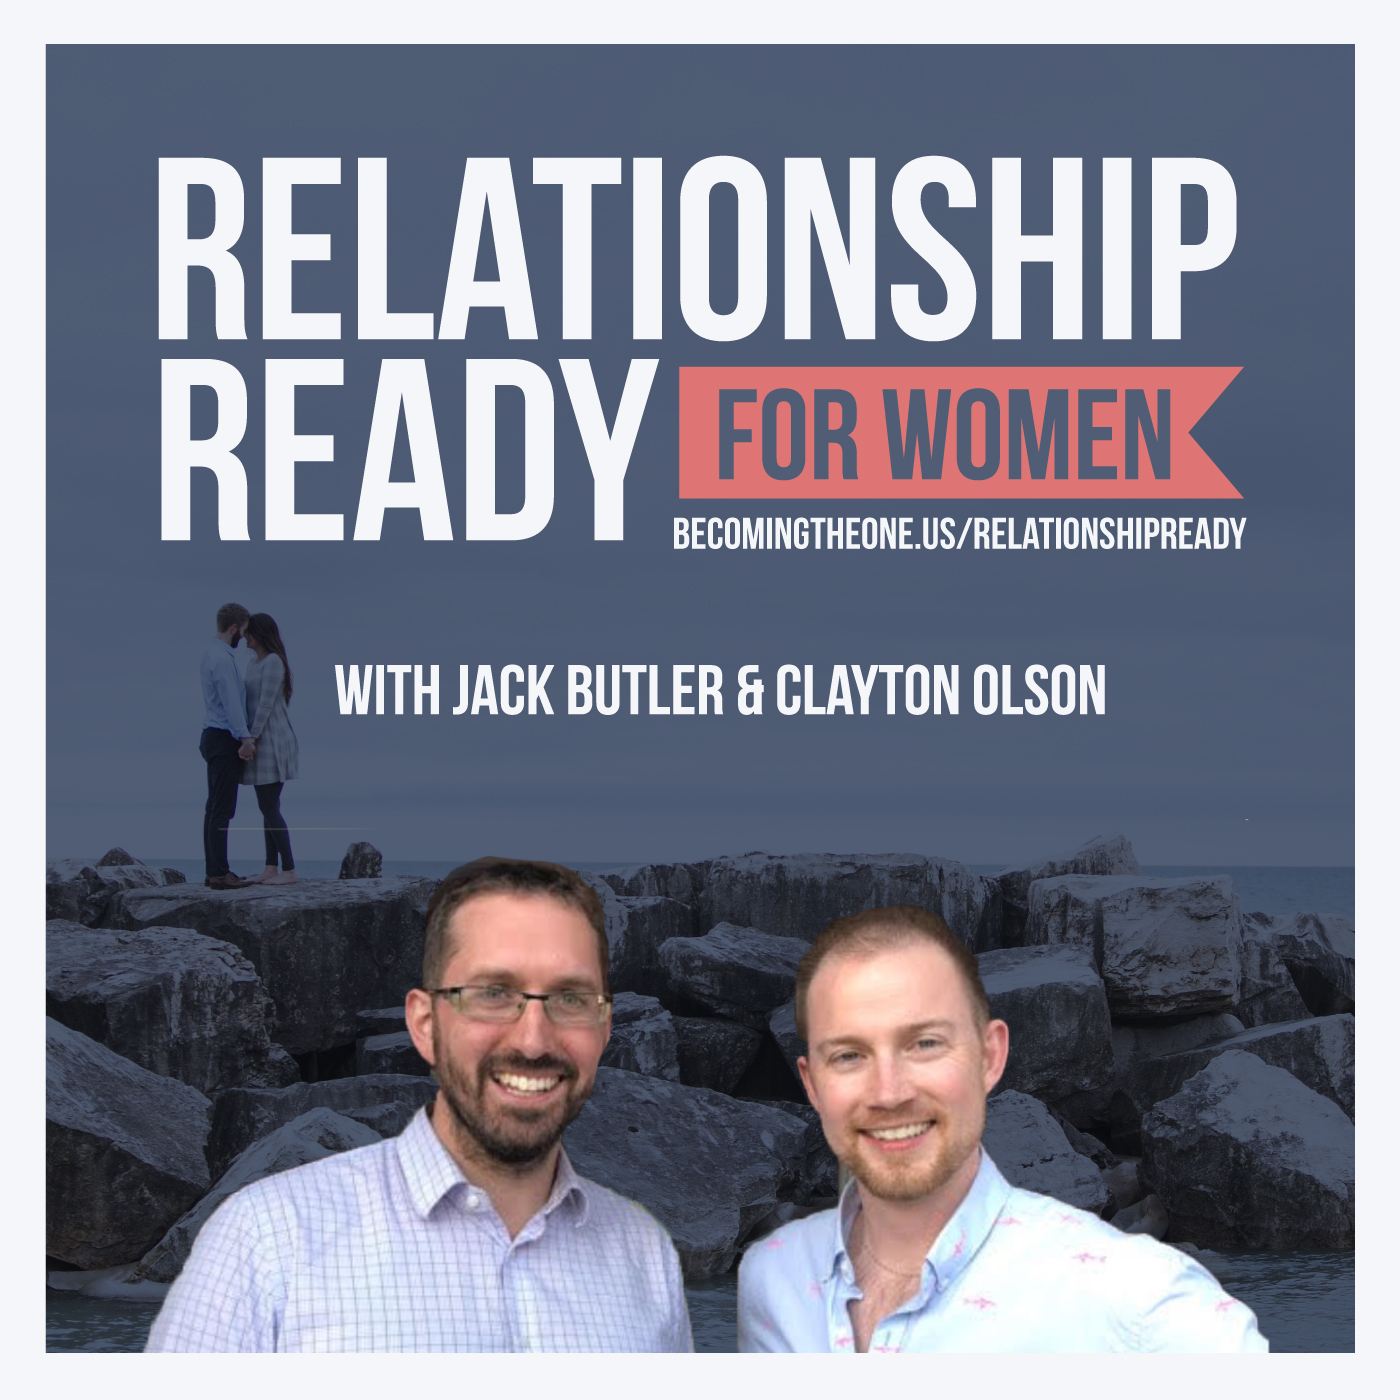 Relationship Ready - Commitment Issues In Dating?